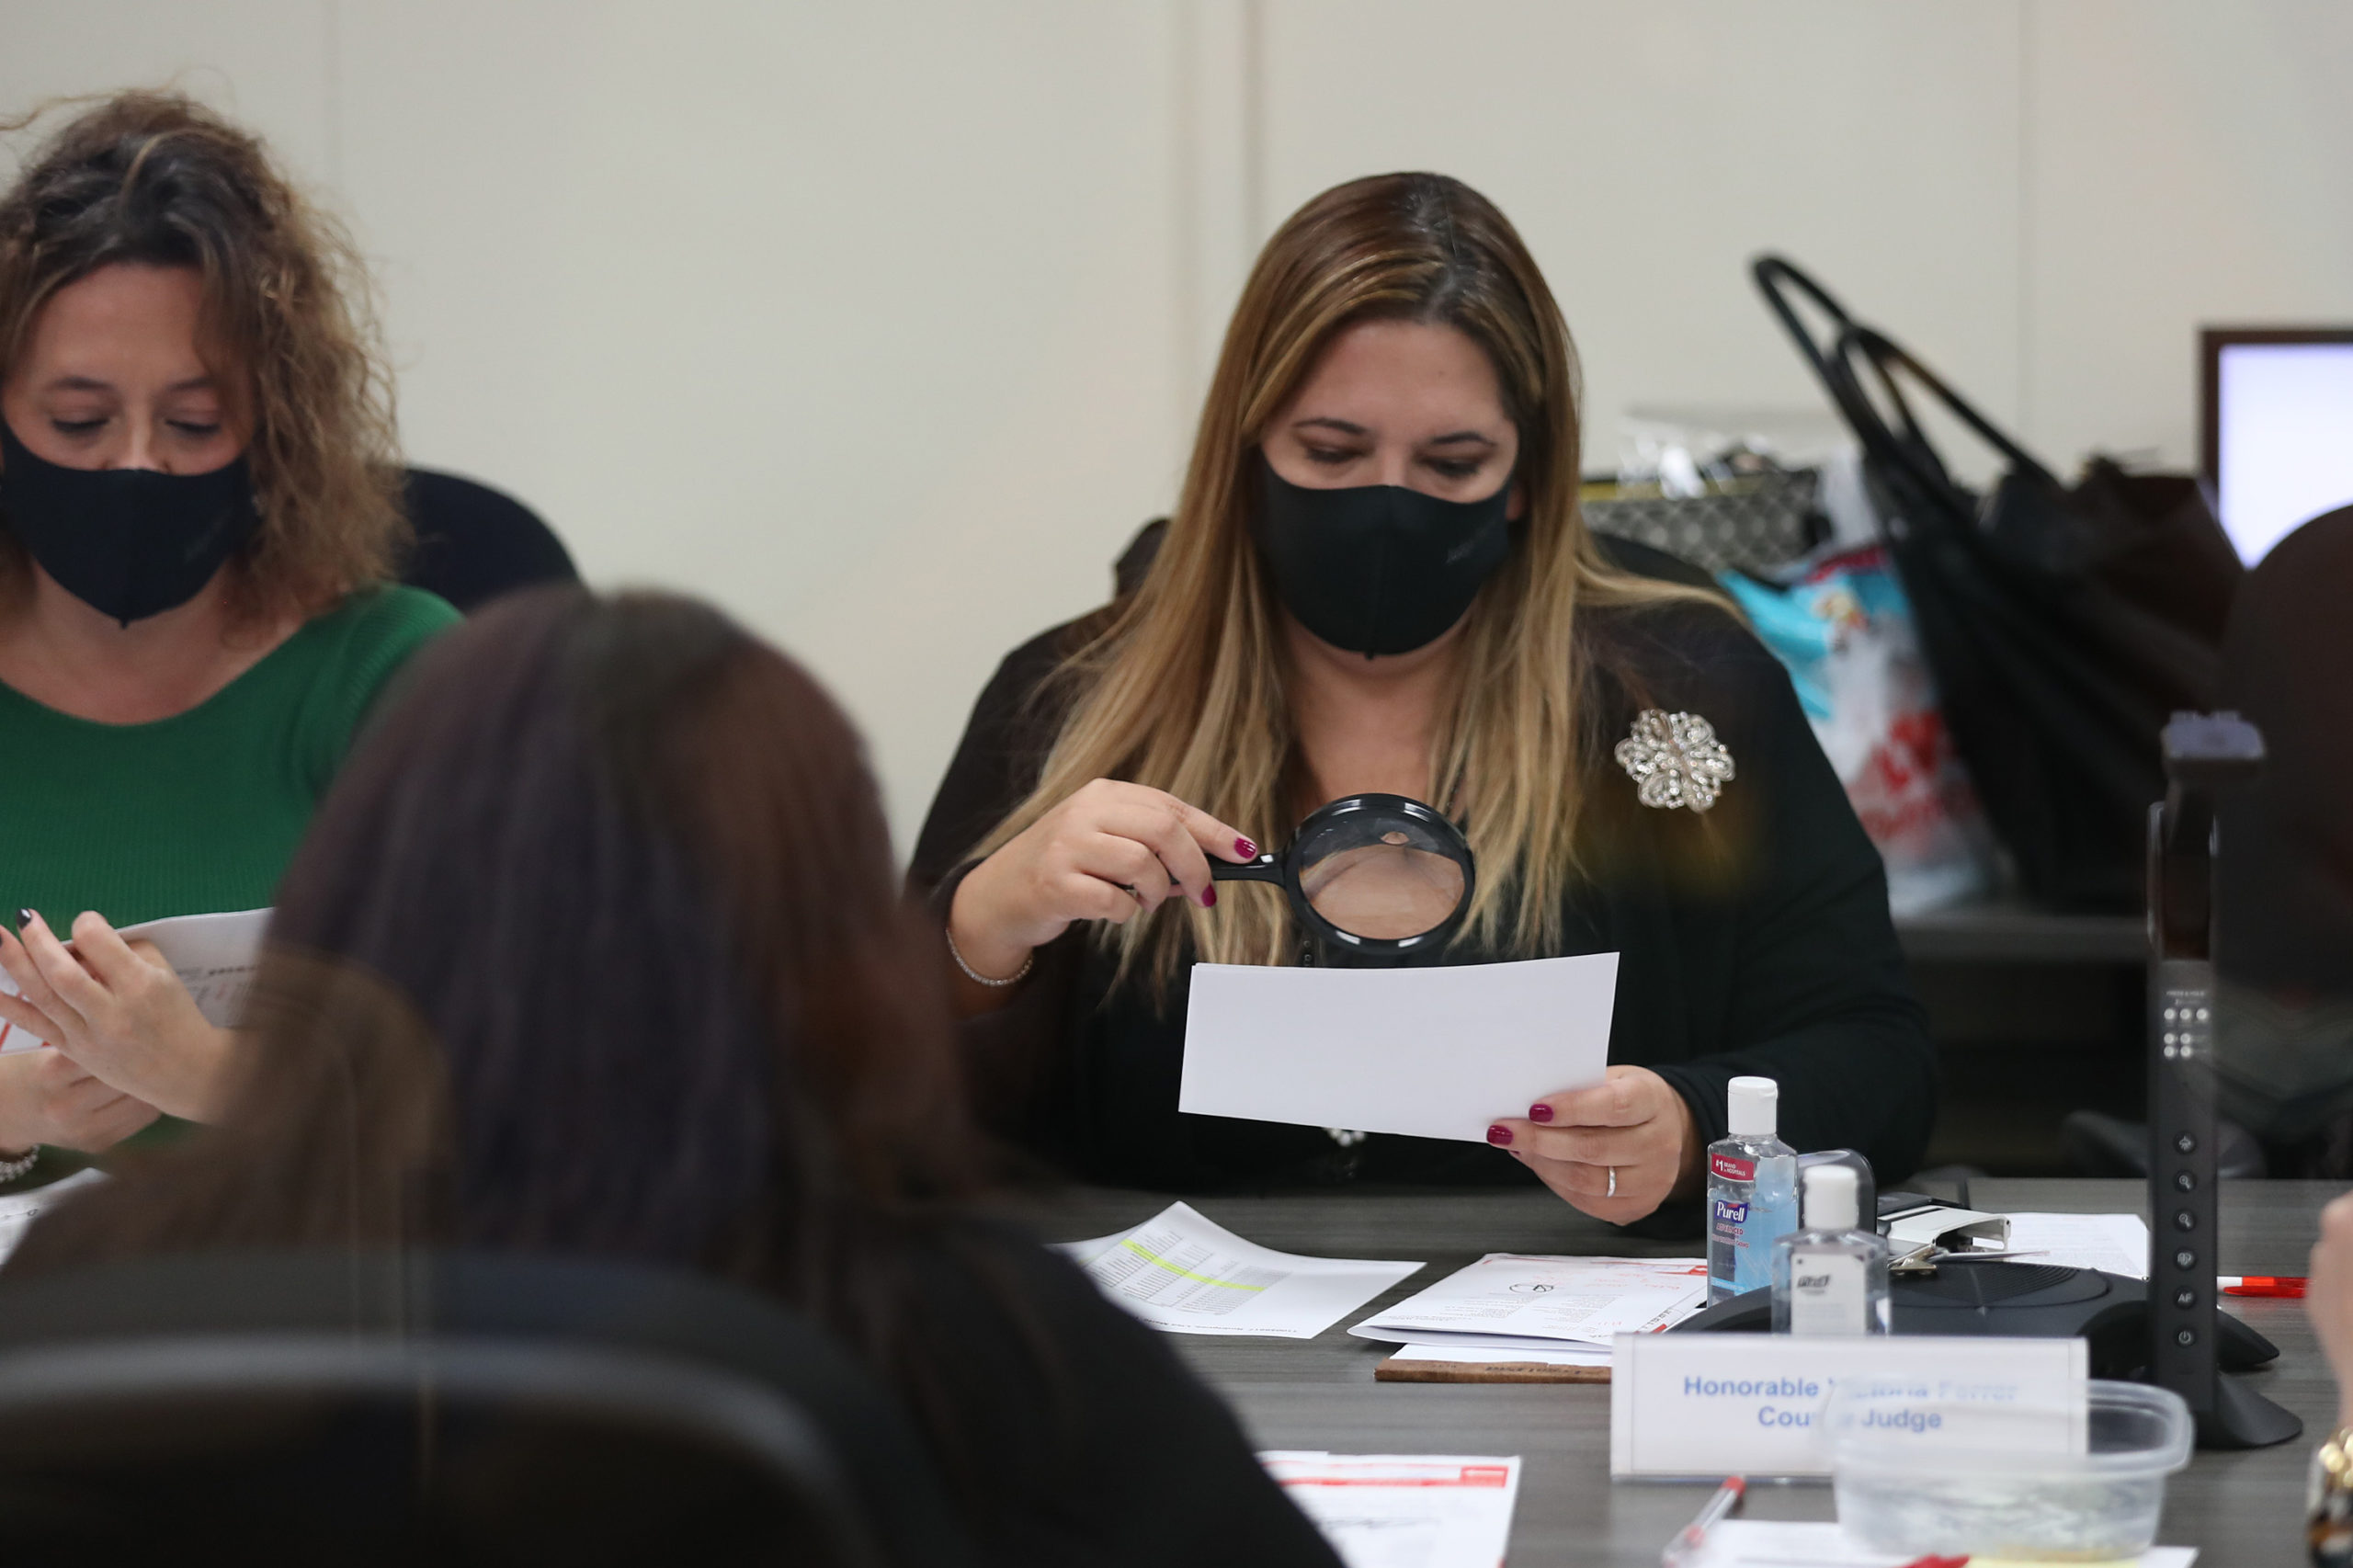 Victoria Ferrer, County Judge, working with the Miami-Dade County Canvassing Board uses a magnifying glass to inspect a Vote-by-Mail ballot for a valid signature at the Miami-Dade County Elections Department on Nov. 3. (Joe Raedle/Getty Images)